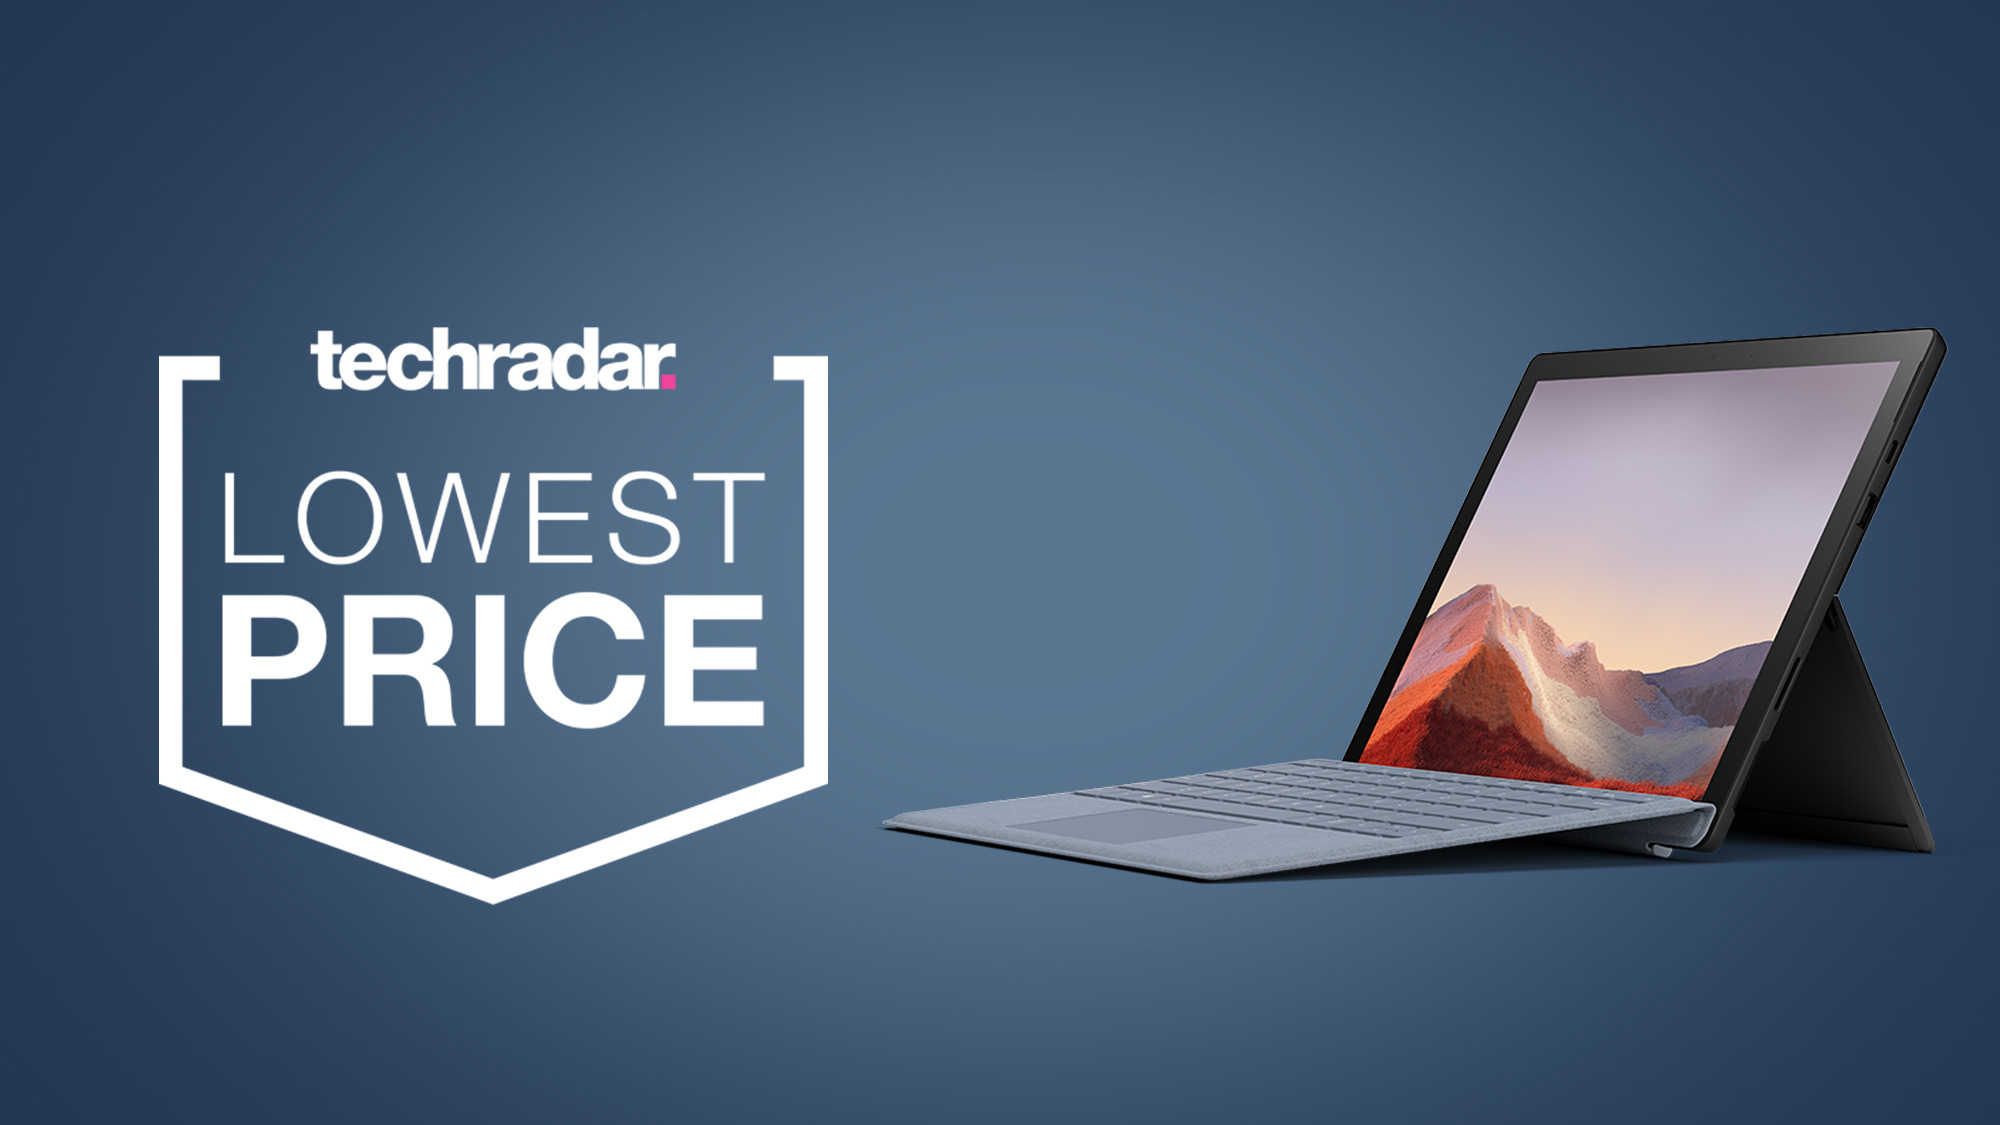 Deal alert: the Microsoft Surface Pro 7 gets a massive $370 price cut at Best Buy thumbnail